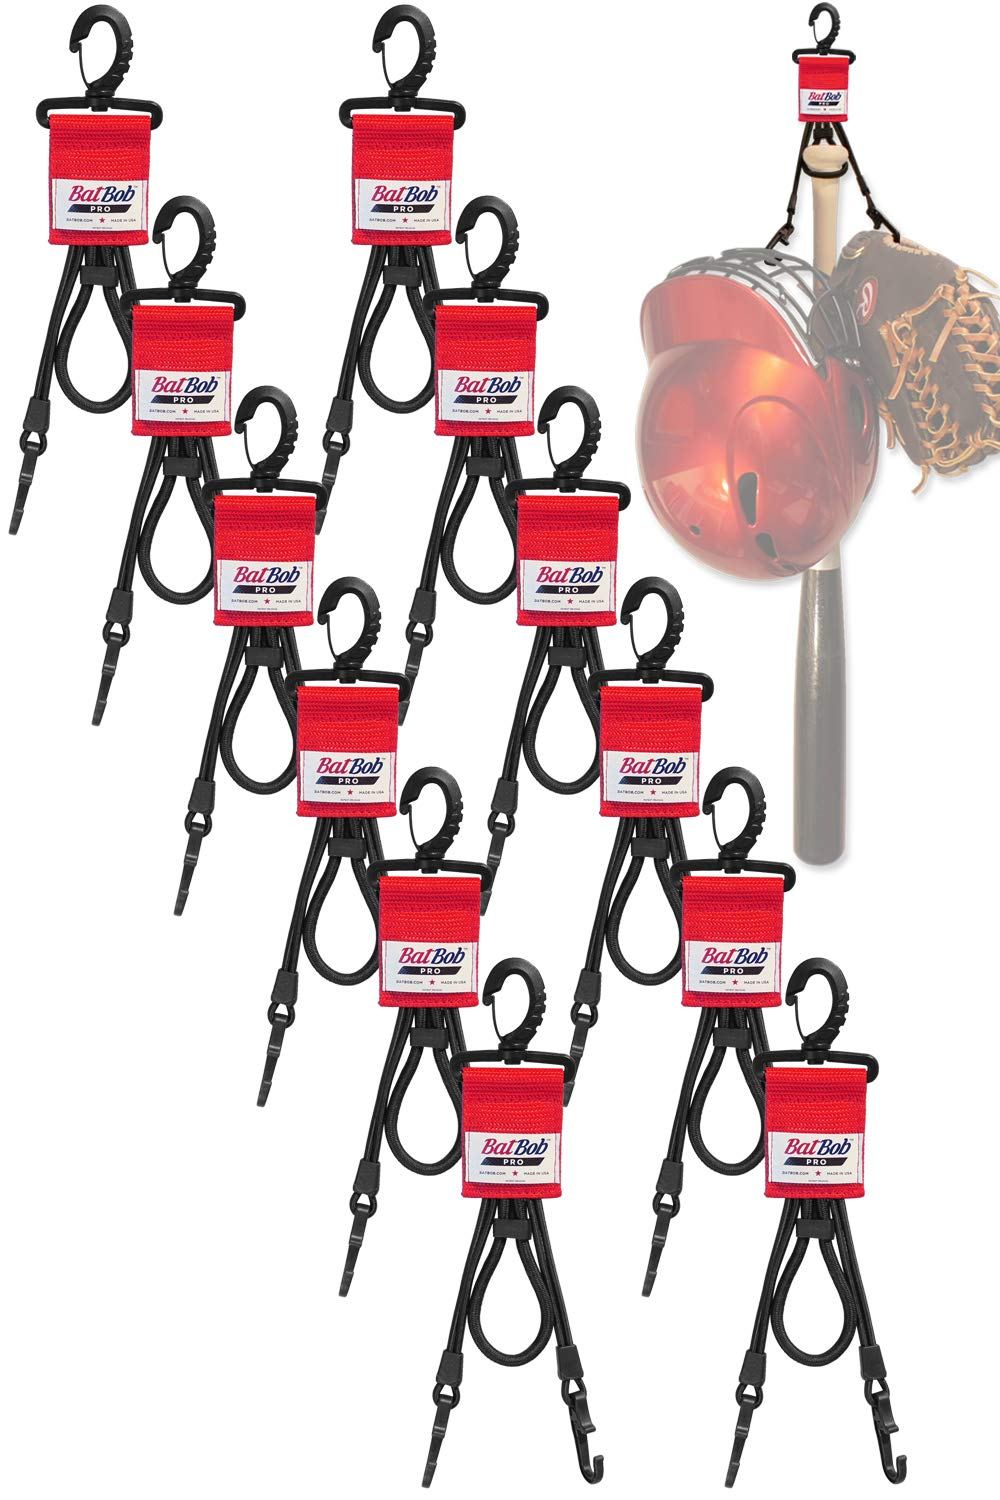 (Team 12 pack) Dugout Gear Hanger - The Dugout Organizer - For Baseball and Softball to hold bats, helmets and gloves (Red) by BatBob